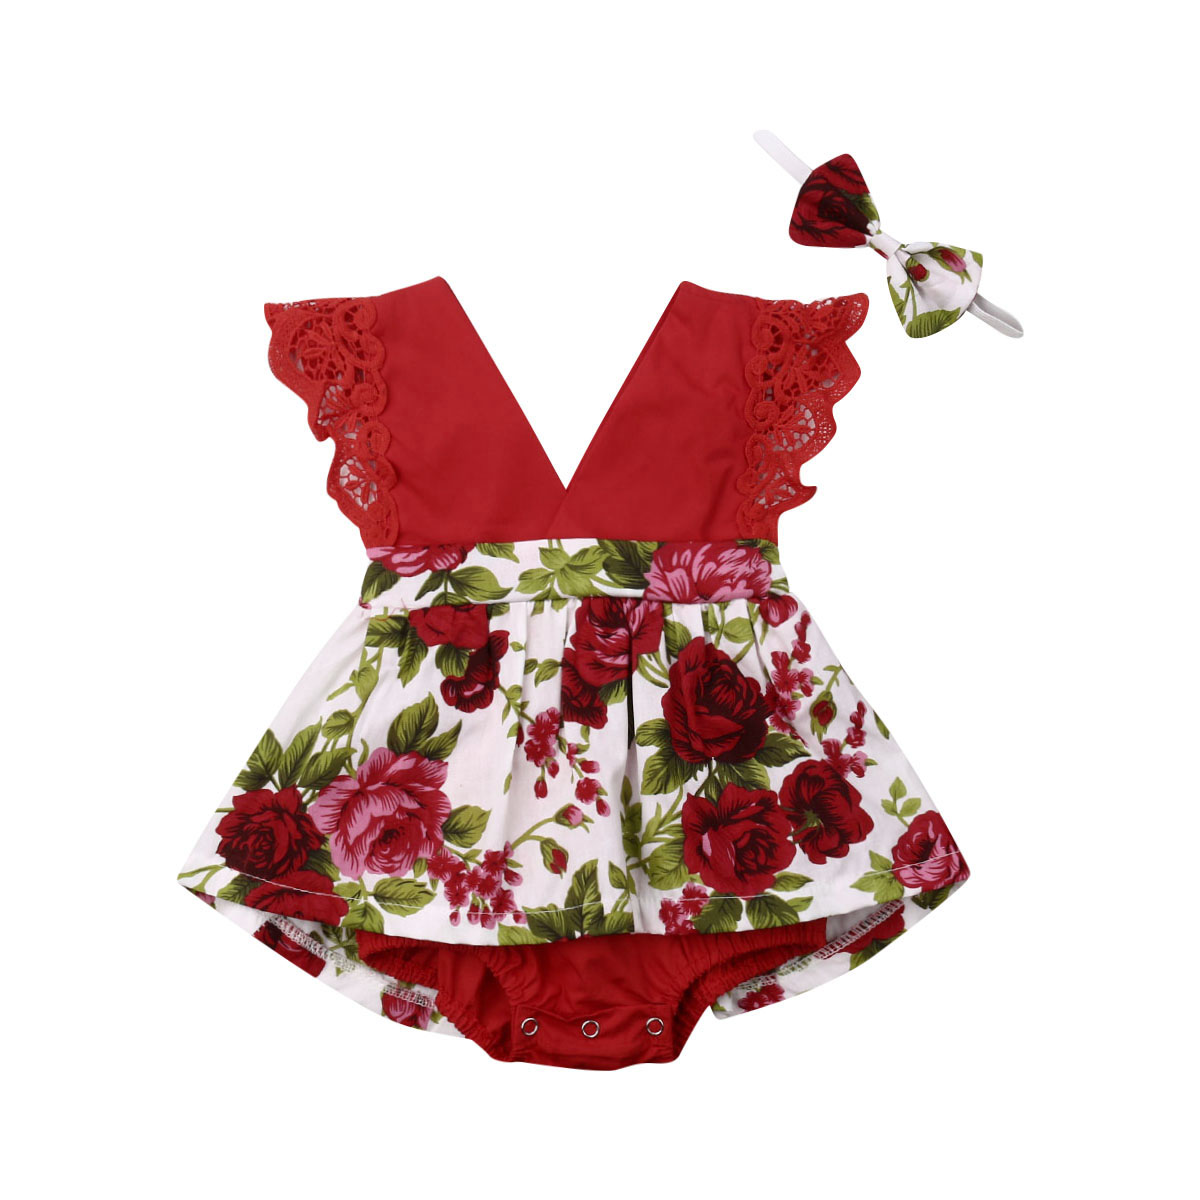 Newborn Baby Girls Romper Flower Infant Girl Clothing Lace Floral Ruffles Jumpsuit Playsuit Baby Girls Summer Costumes